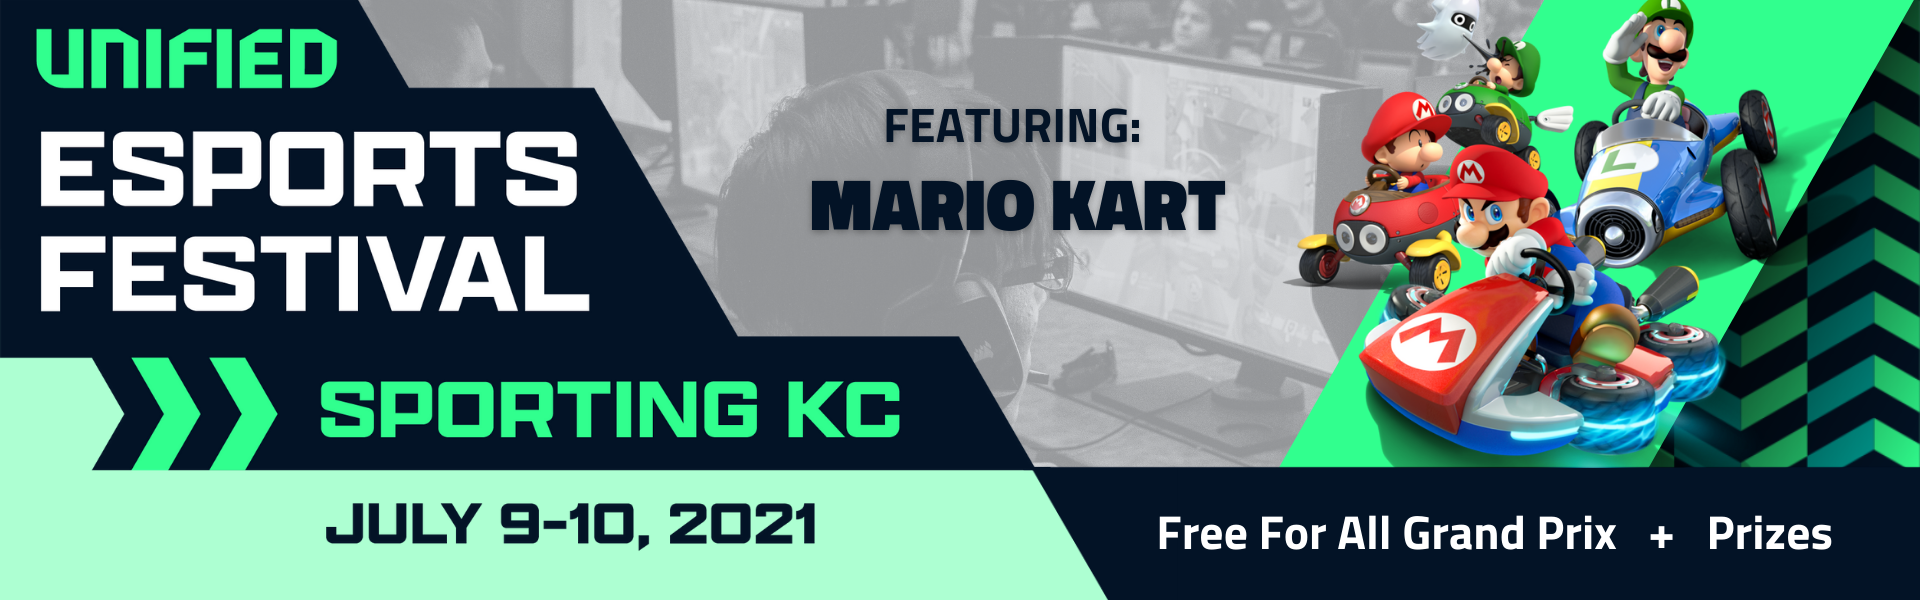 EF:SKC Featuring Mario Kart 8 Deluxe (Switch)